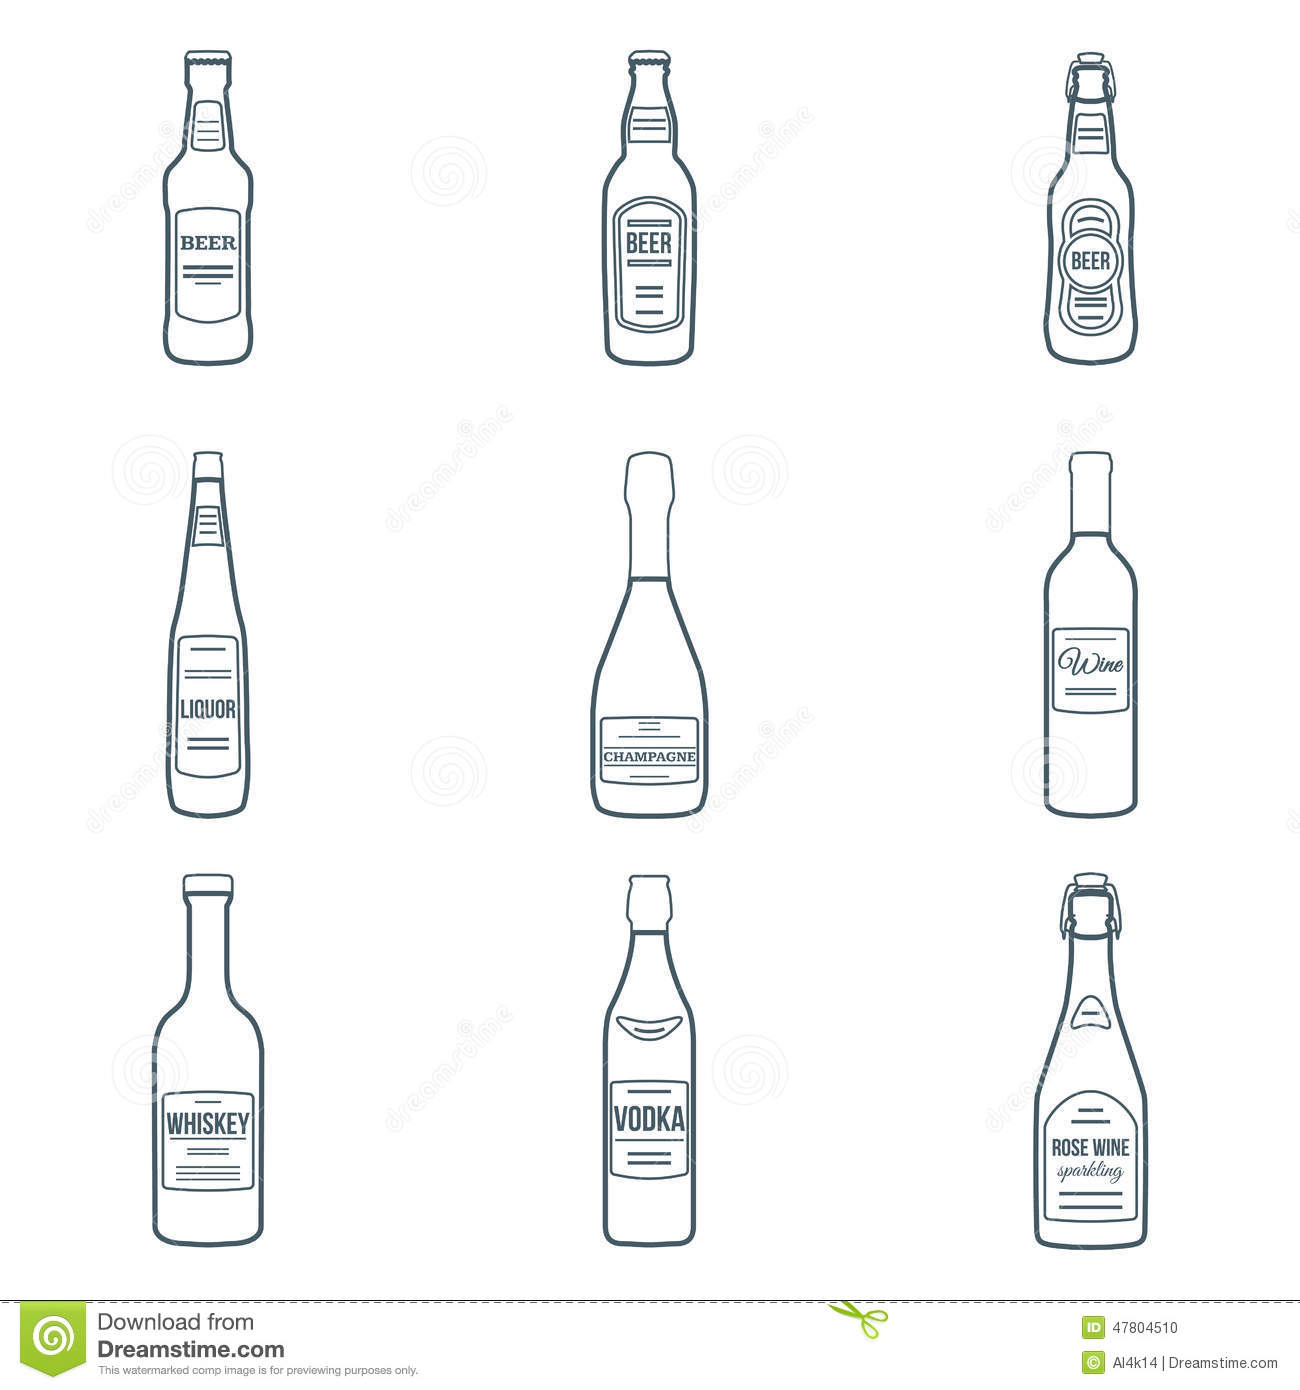 44420 Wine Glass Vector furthermore 19695 as well Stock Illustration Dark Outline Alcohol Bottles Icons Set Vector Design White Image47804510 together with How Tell Whether Whiskey Fake in addition This Year Cognac Hennessy Expects To Sell More In The Usa Than The 4 Million Cases Sold In 2014. on bottles of liquor on bar